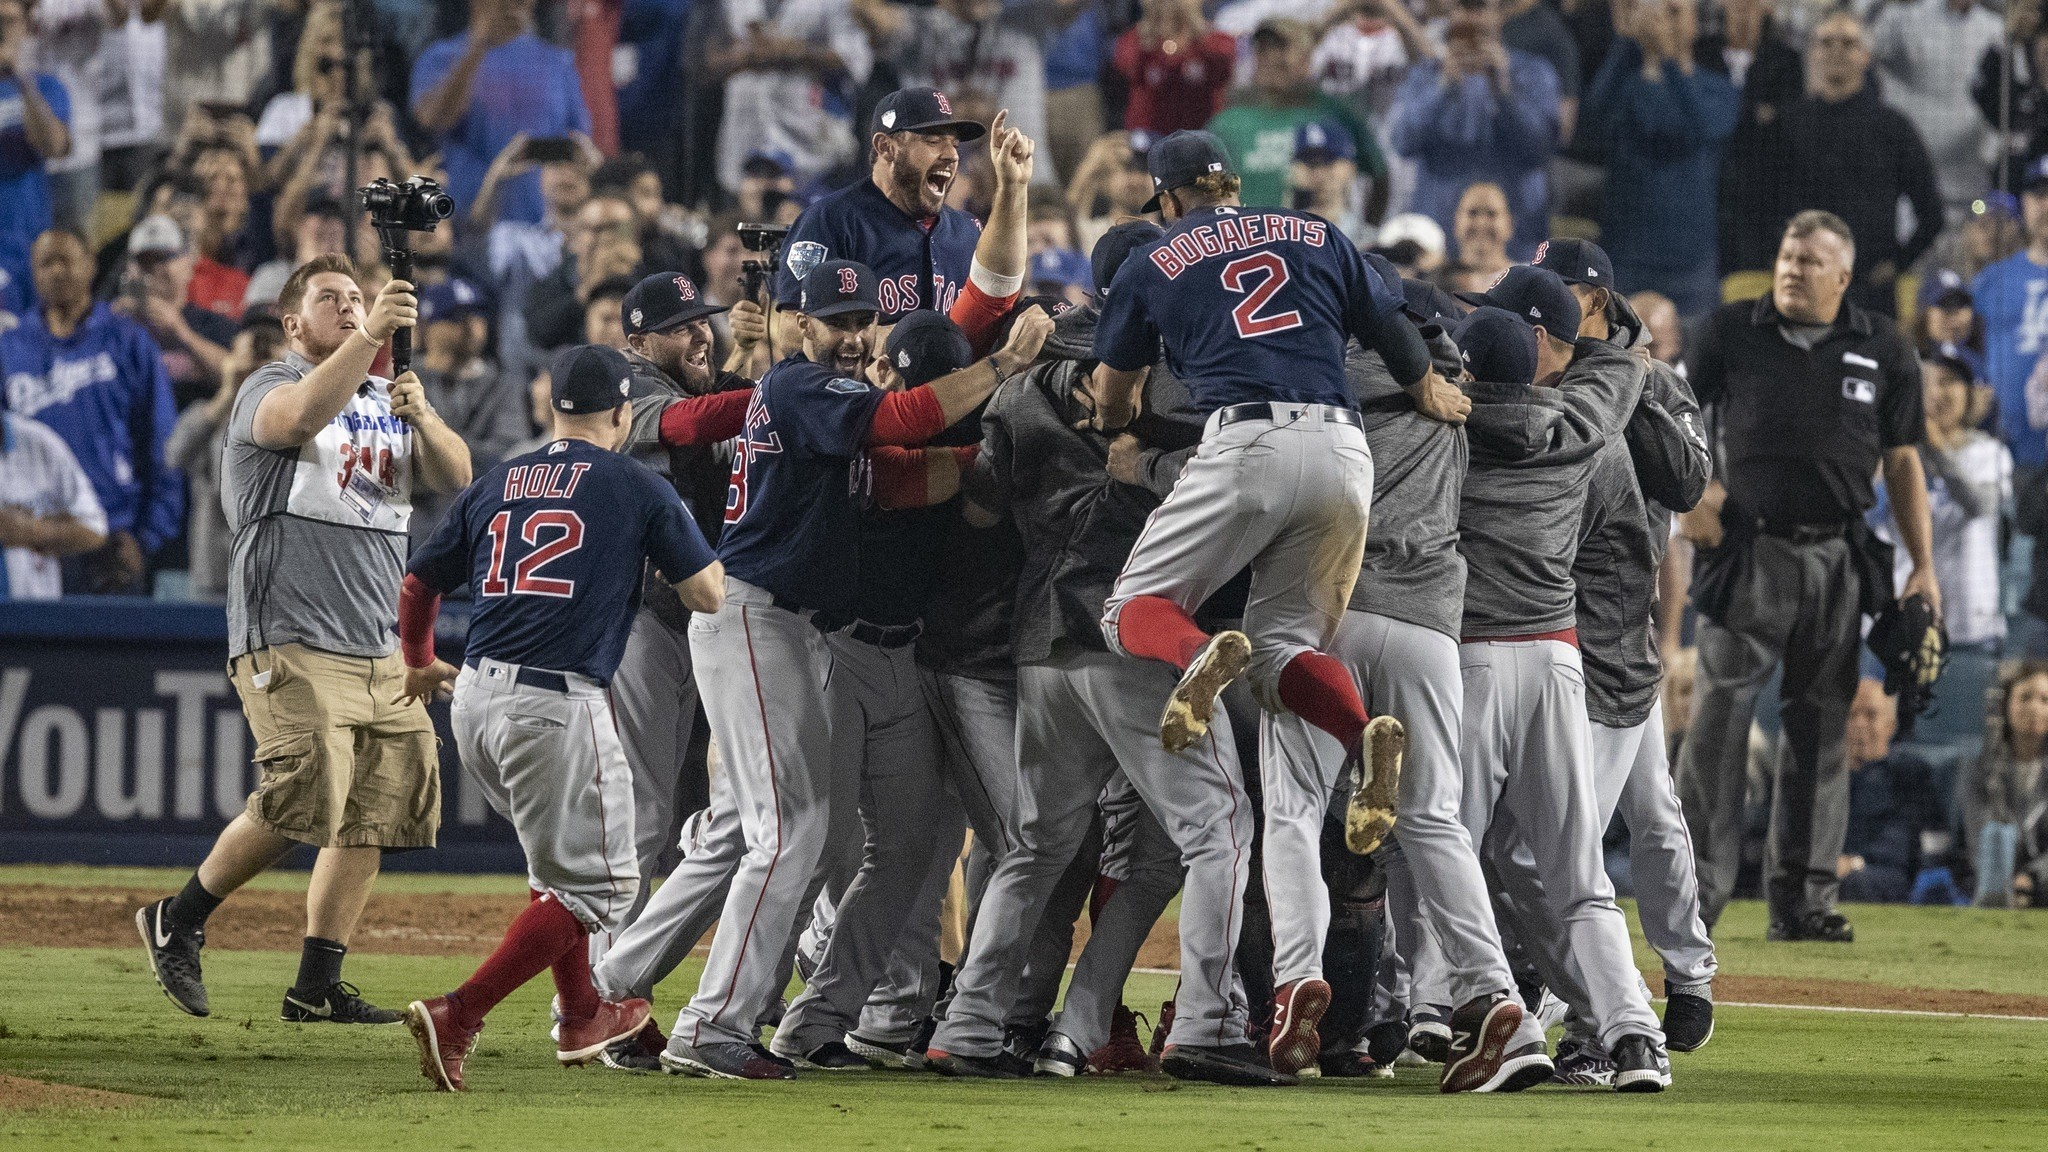 LOS ANGELES, CA - OCTOBER 28, 2018: Boston Red Sox celebrate a 5-1 win over the Dodgers to win the W